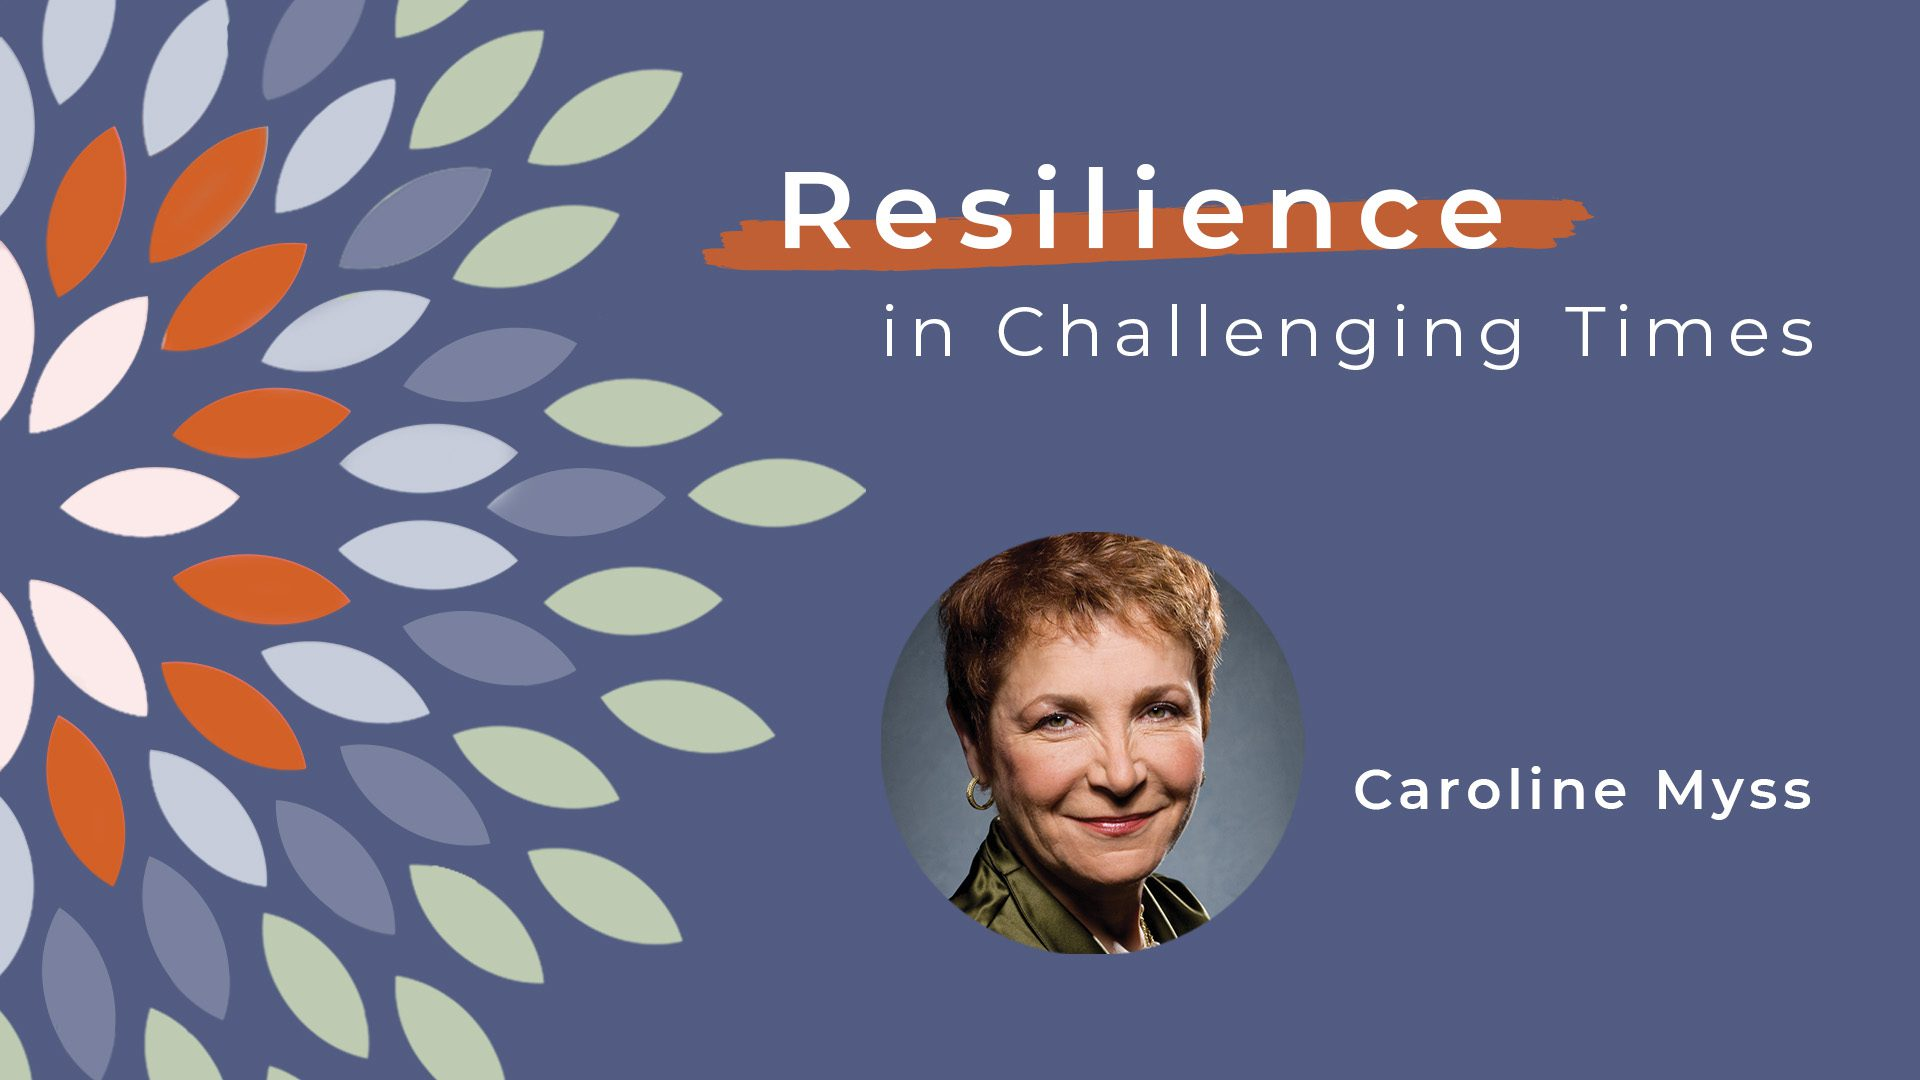 Resiliece-video-caroline-myss-title-card